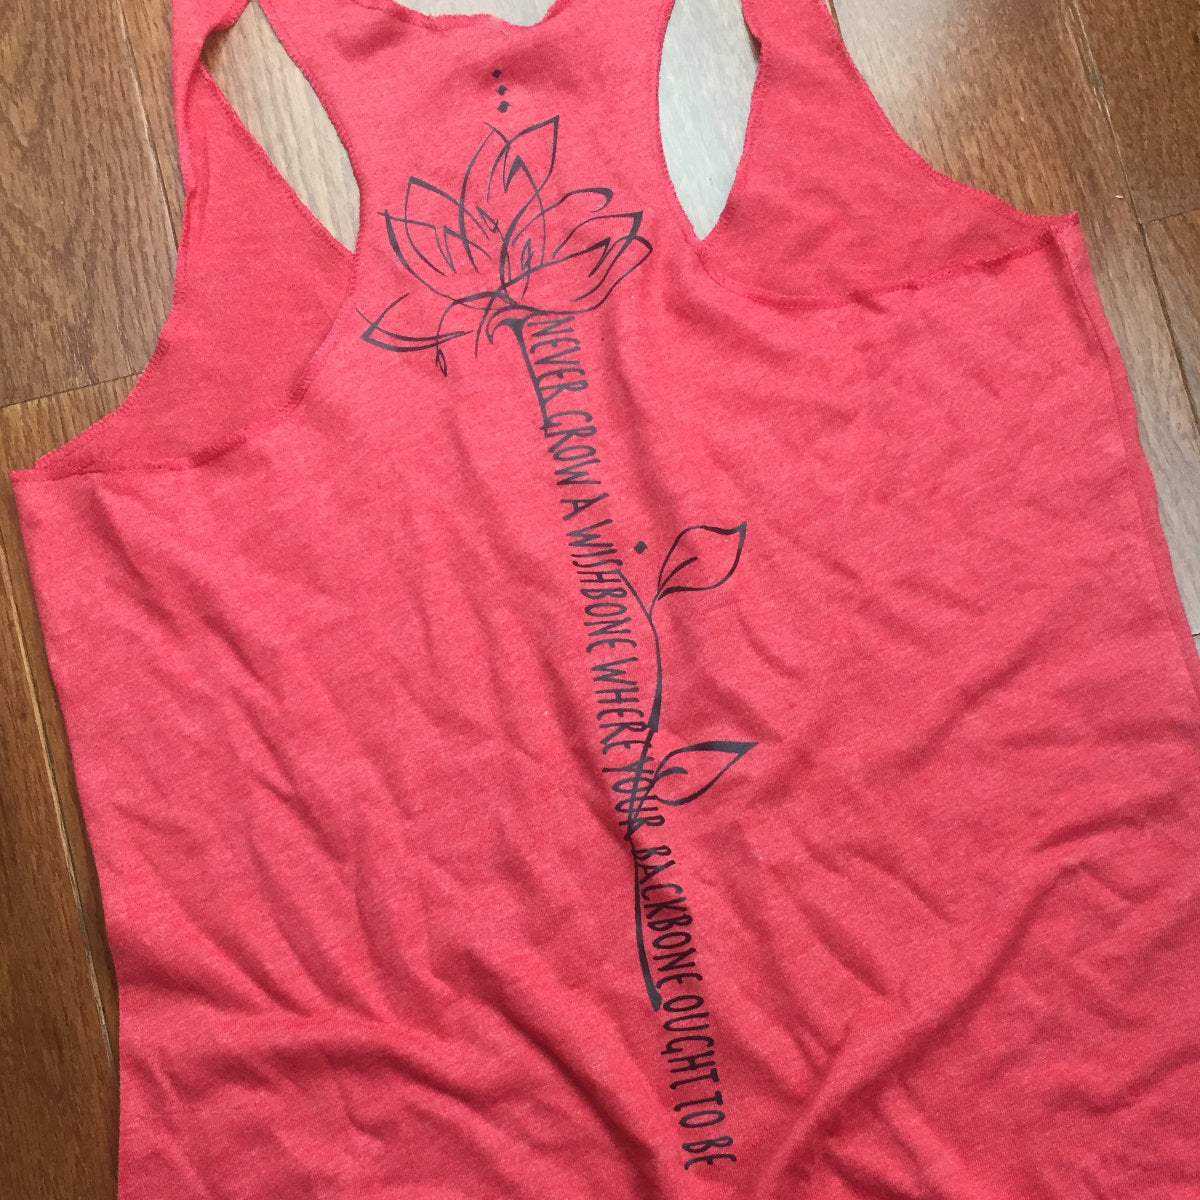 Backbone  - Super Soft Racer Back Tank Top